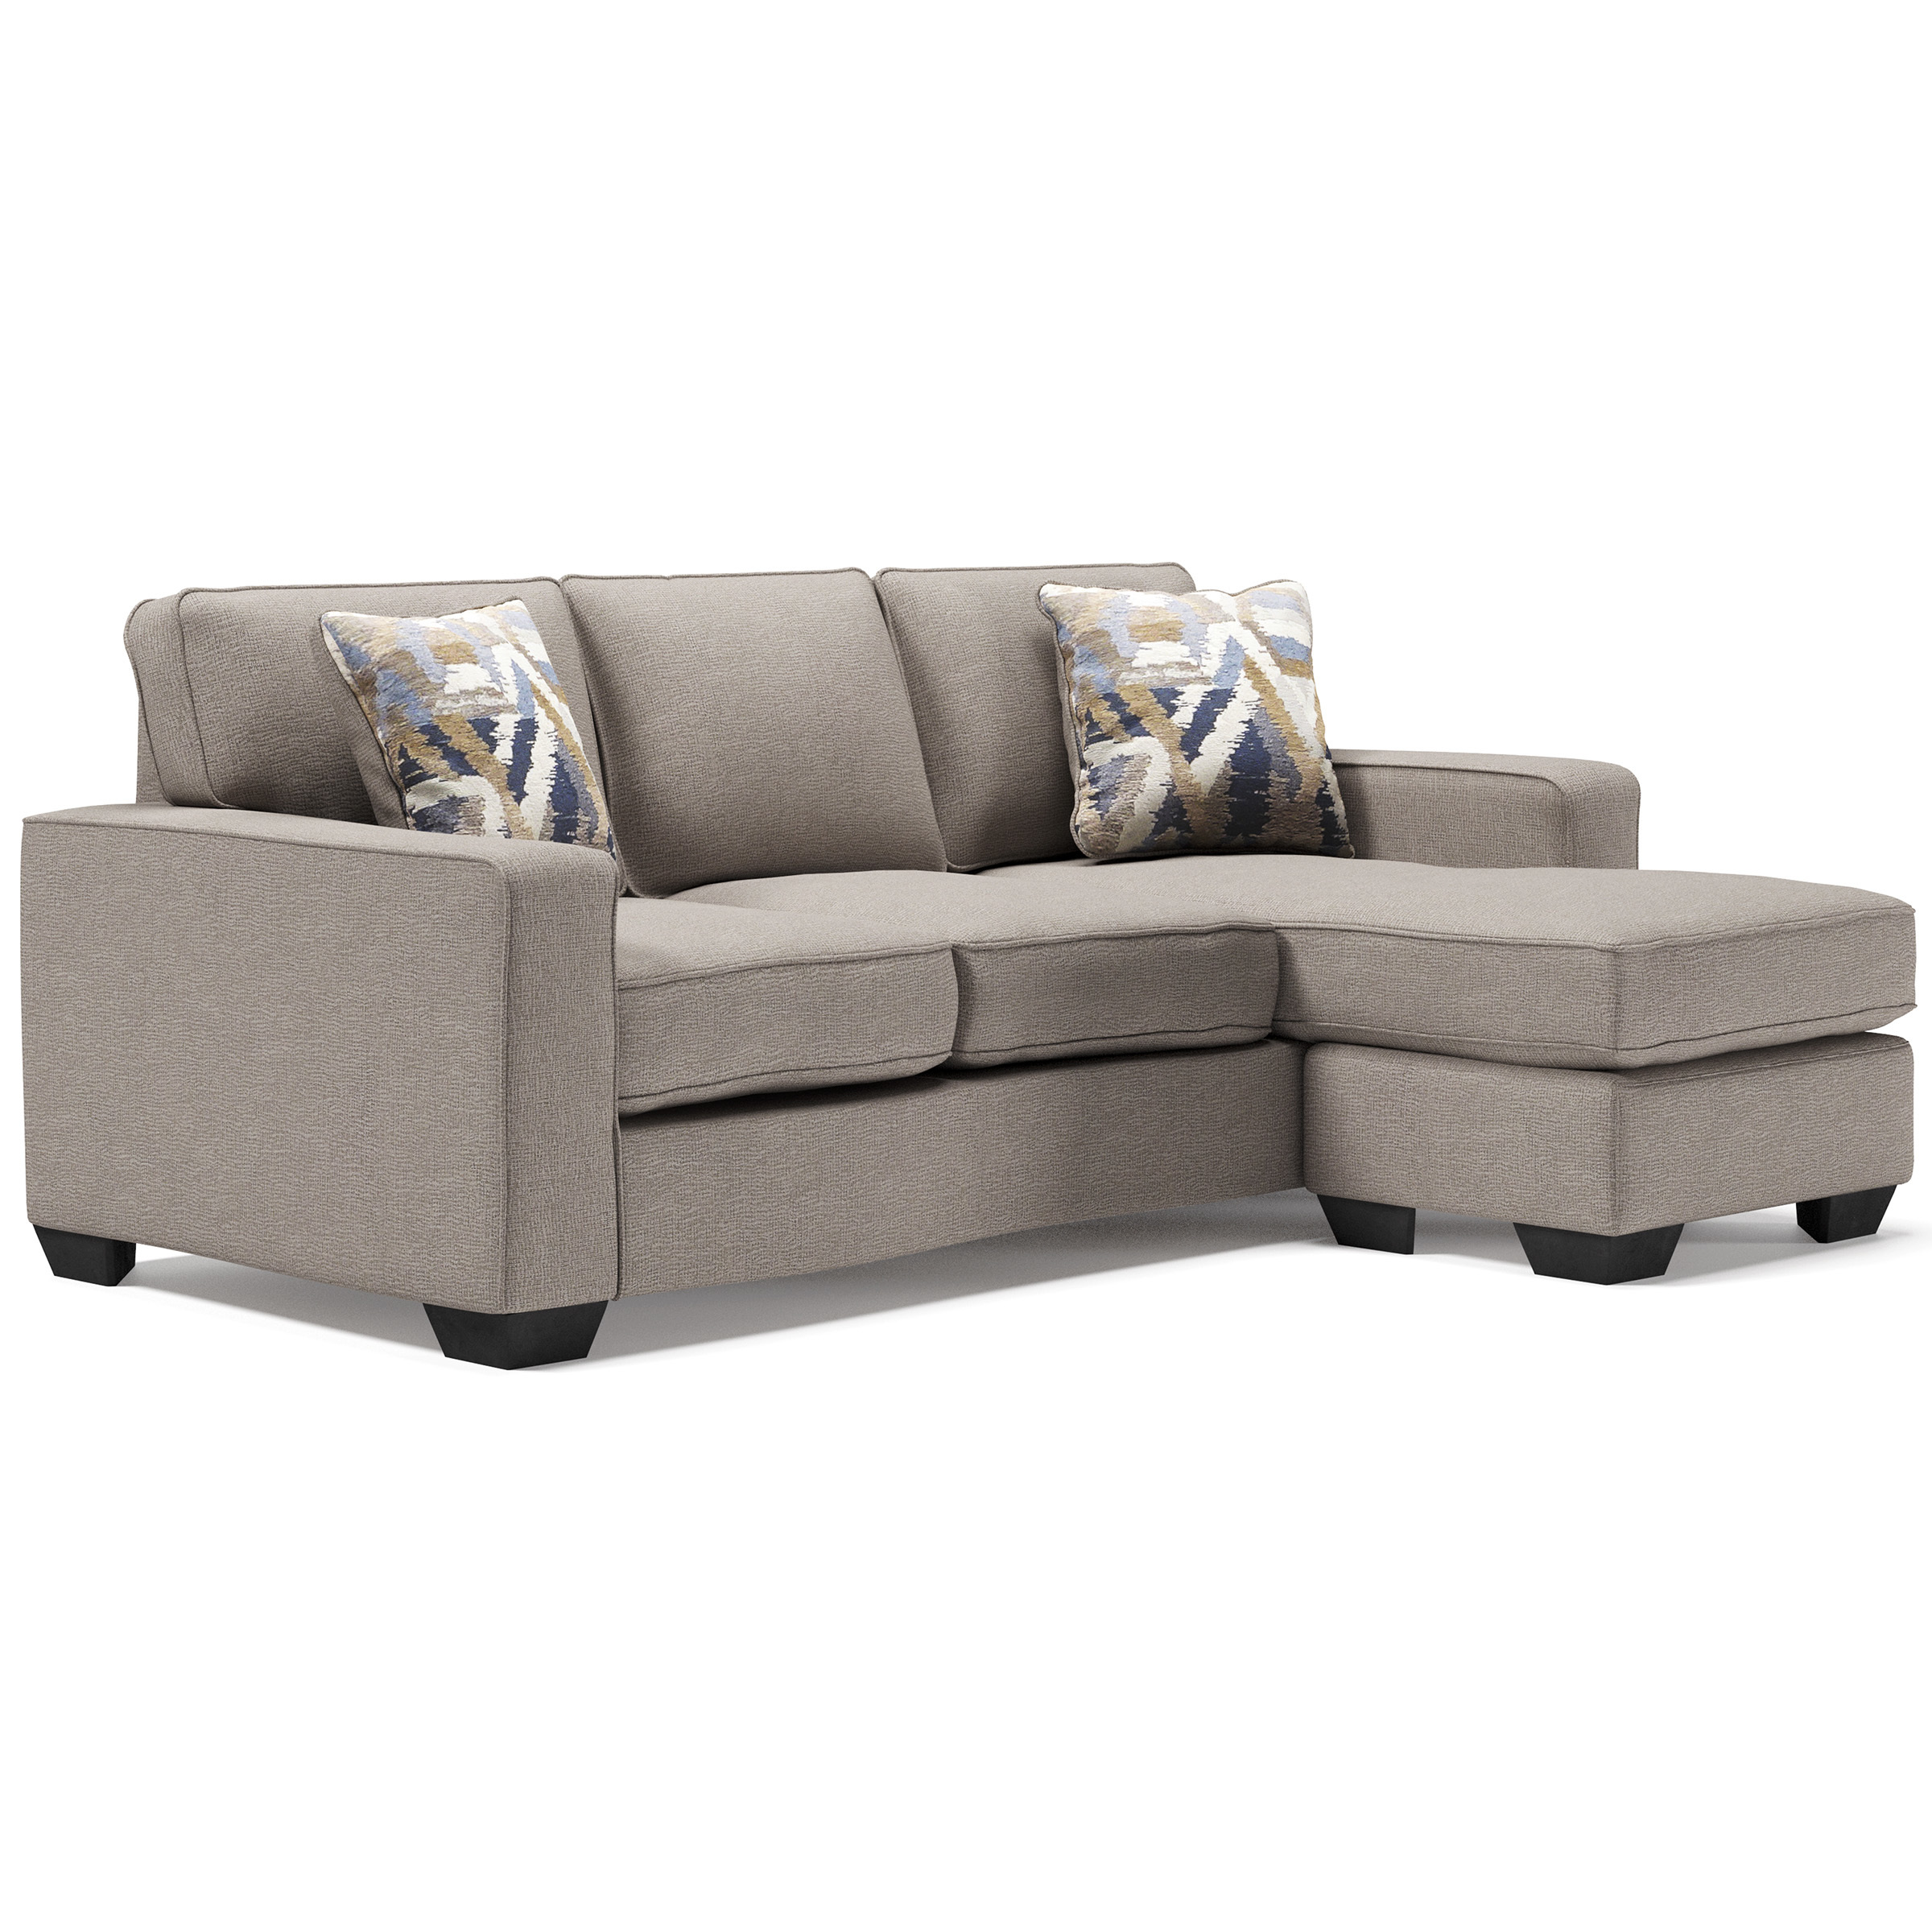 Greaves Sofa Chaise By Signature Design By Ashley 5510418 Northpoint Furniture Mattress